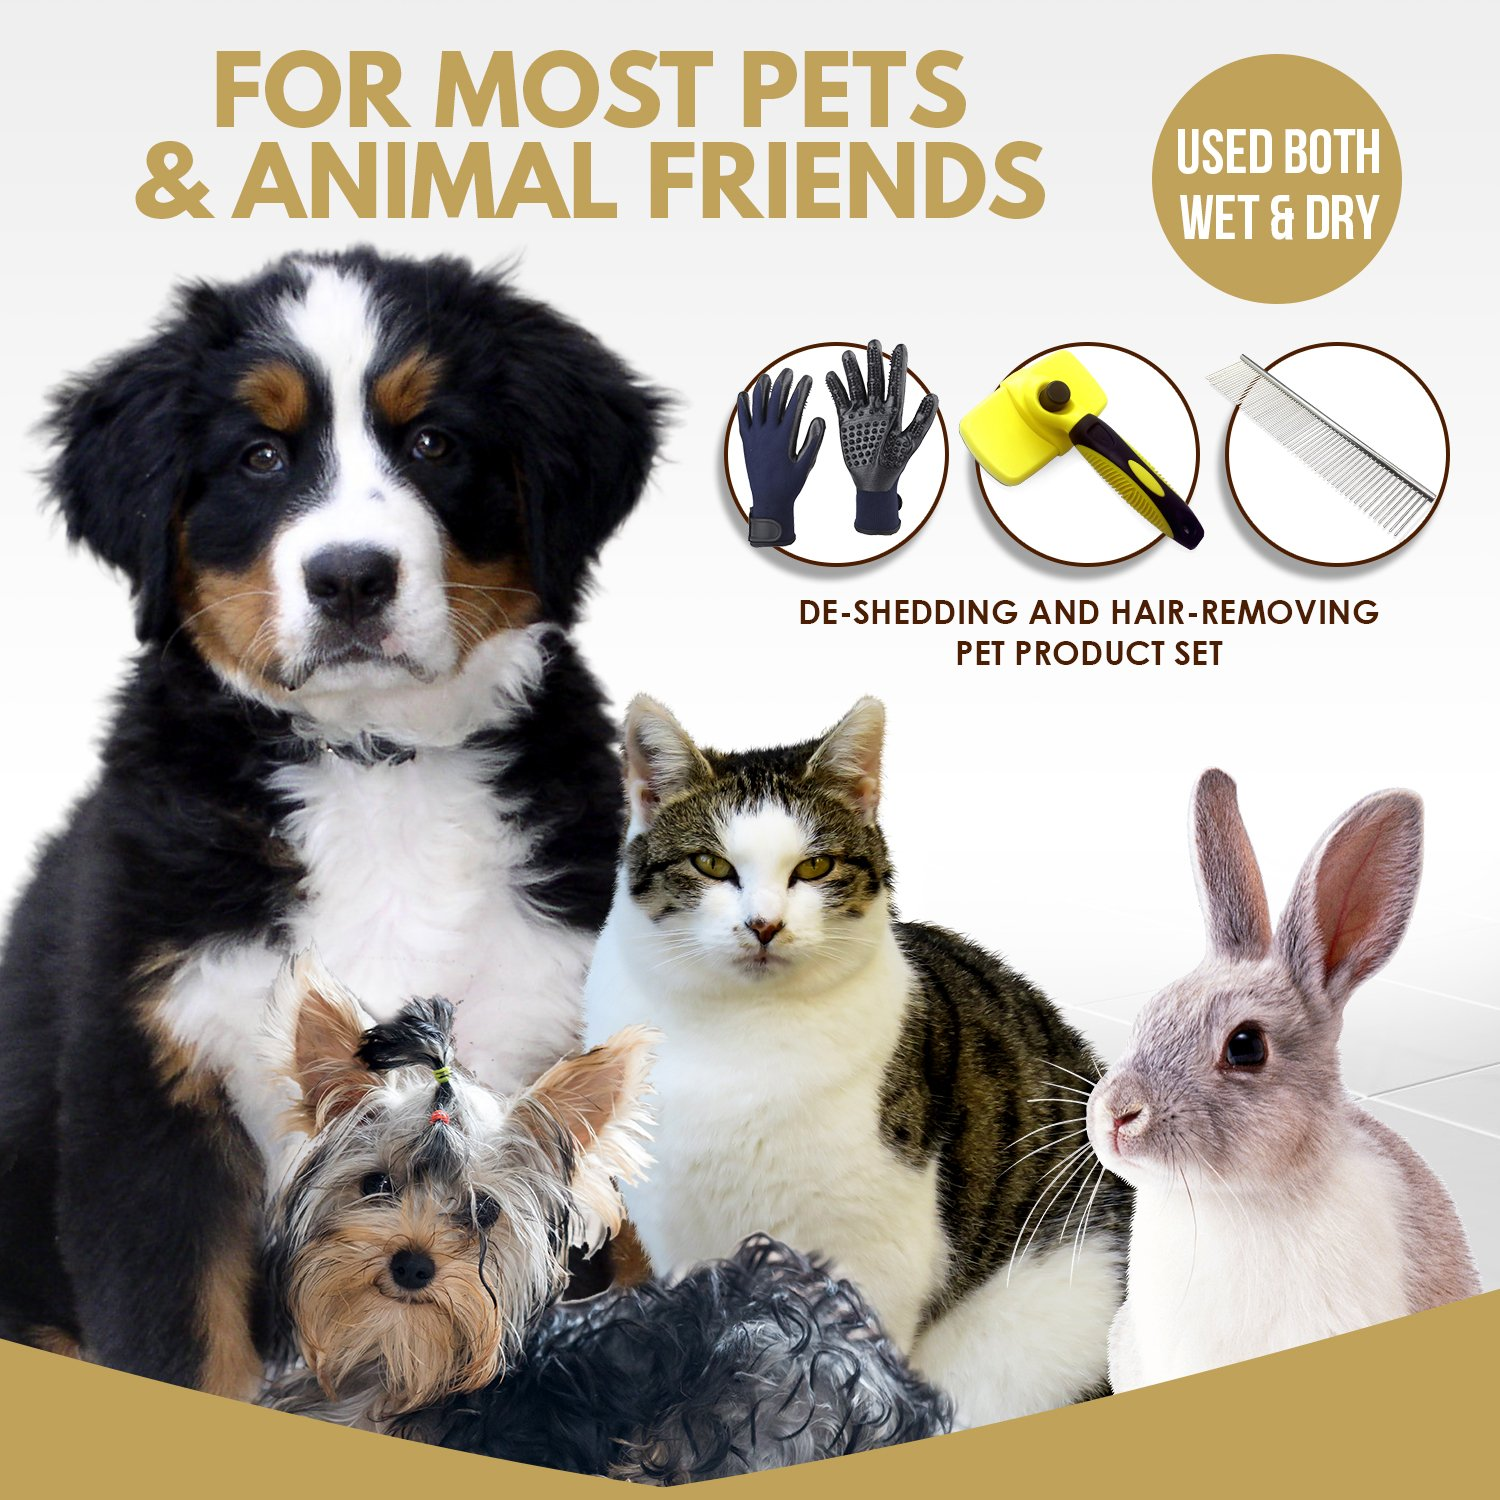 3 in 1 Pet Grooming Set,Self Cleaning Slicker Brush,Pet Comb and 1 Pair Pet grooming Gloves-Right & Left Hands,Anti Shedding Pet Hair Remover for Dogs & Cats,Deshedding Fur,Long & Short Hair,Undercoat by SOUL MUTT VAVA (Image #2)